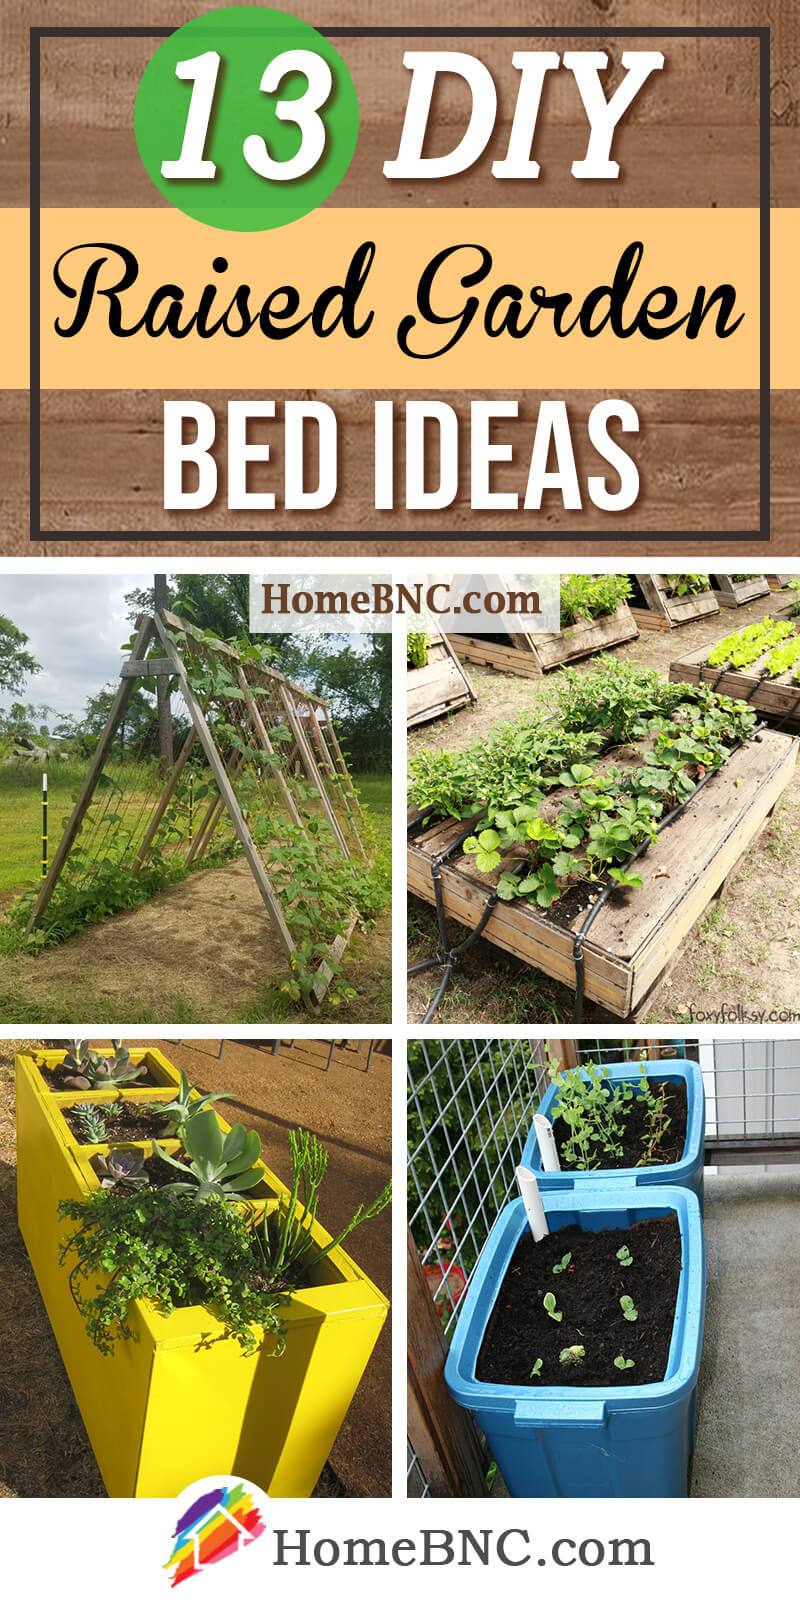 13 Best Diy Raised Garden Bed Ideas And, How To Make An Easy Raised Garden Bed